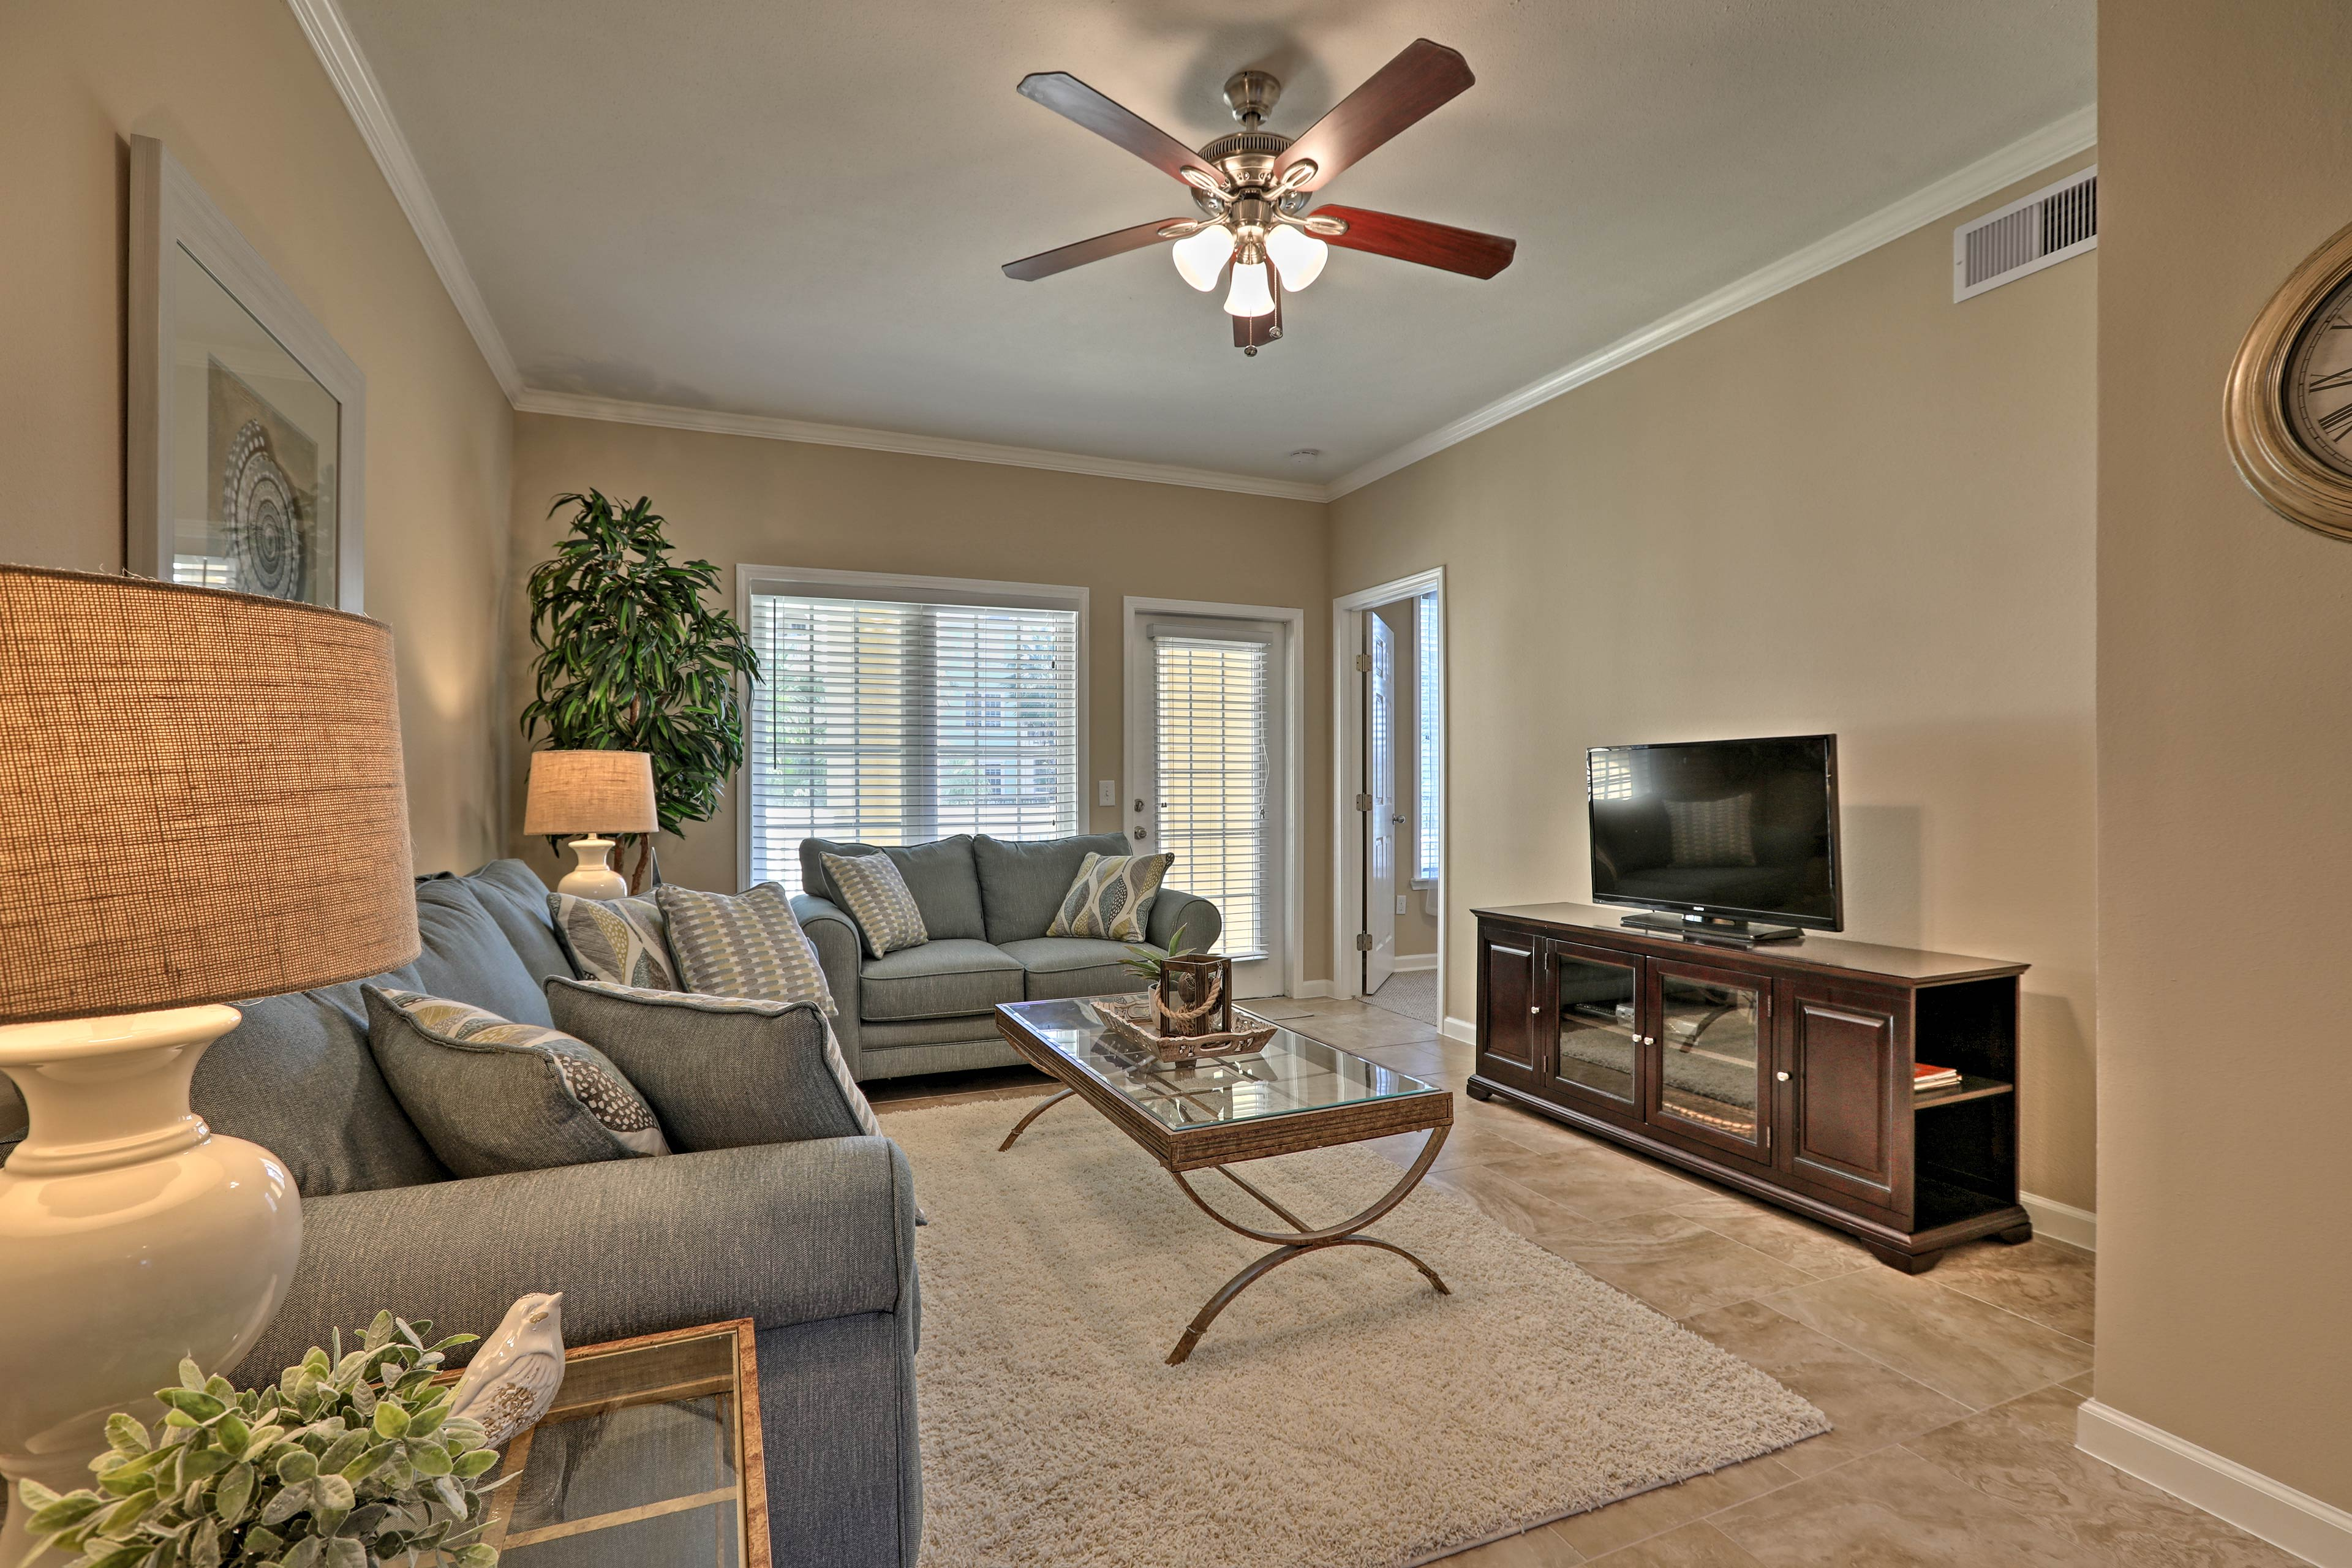 Get away to Galveston and stay at this brand new 1-BR, 1-BA vacation rental.